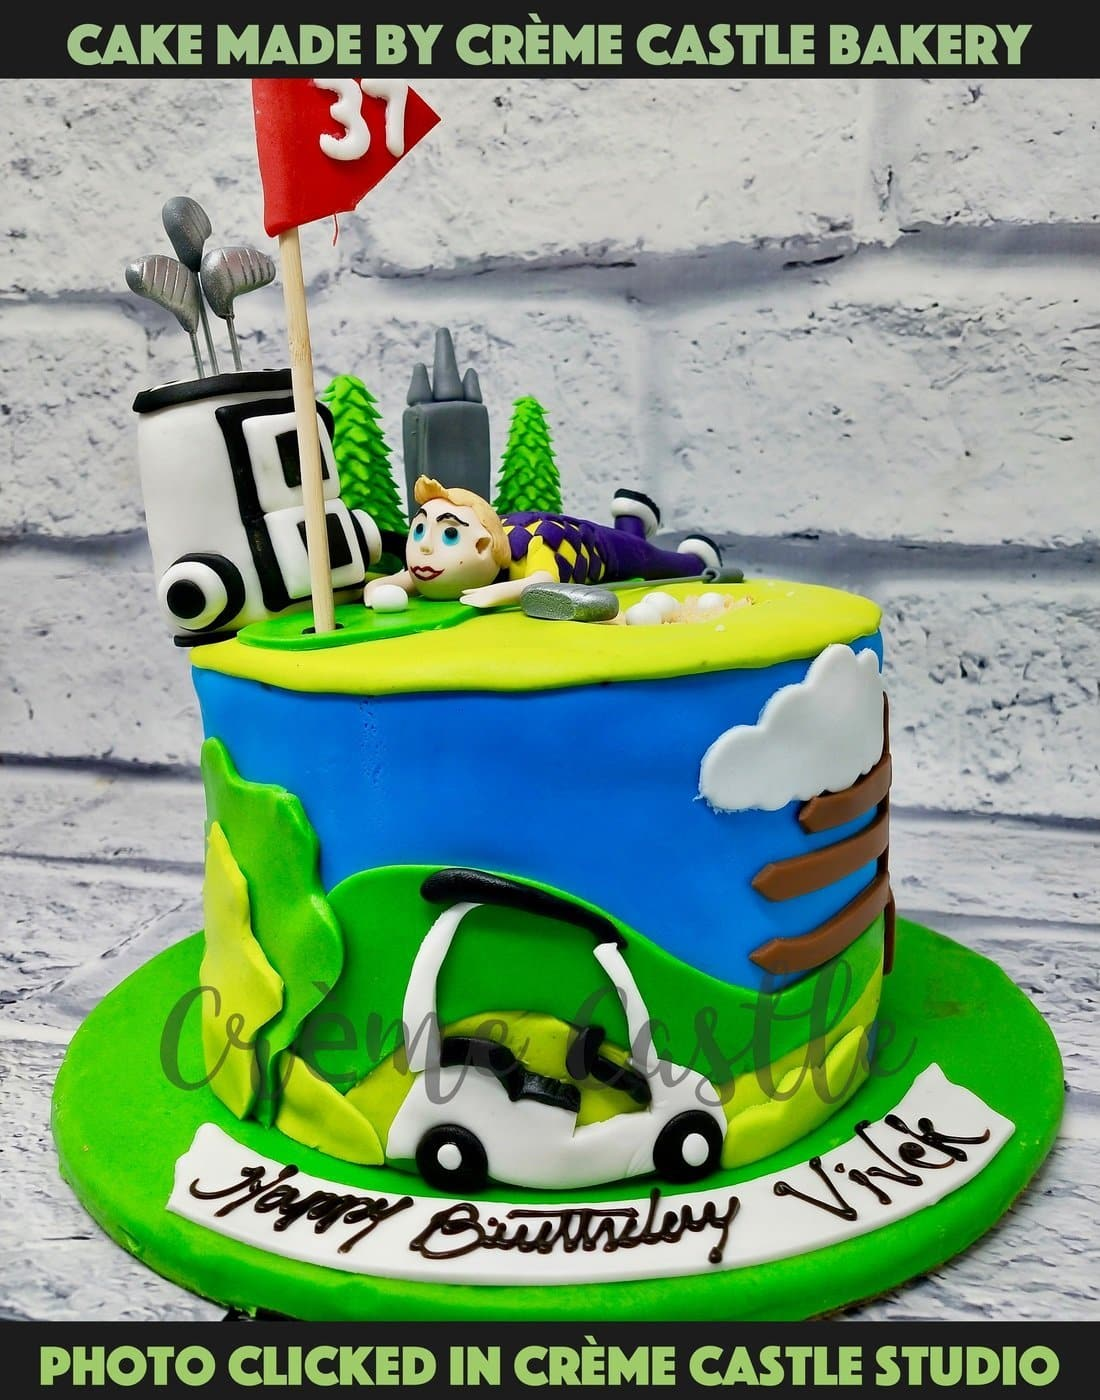 A cake for an avid golf player who likes to play golf and is a champion at it. A cake with all relevant golf related stuff on the cake